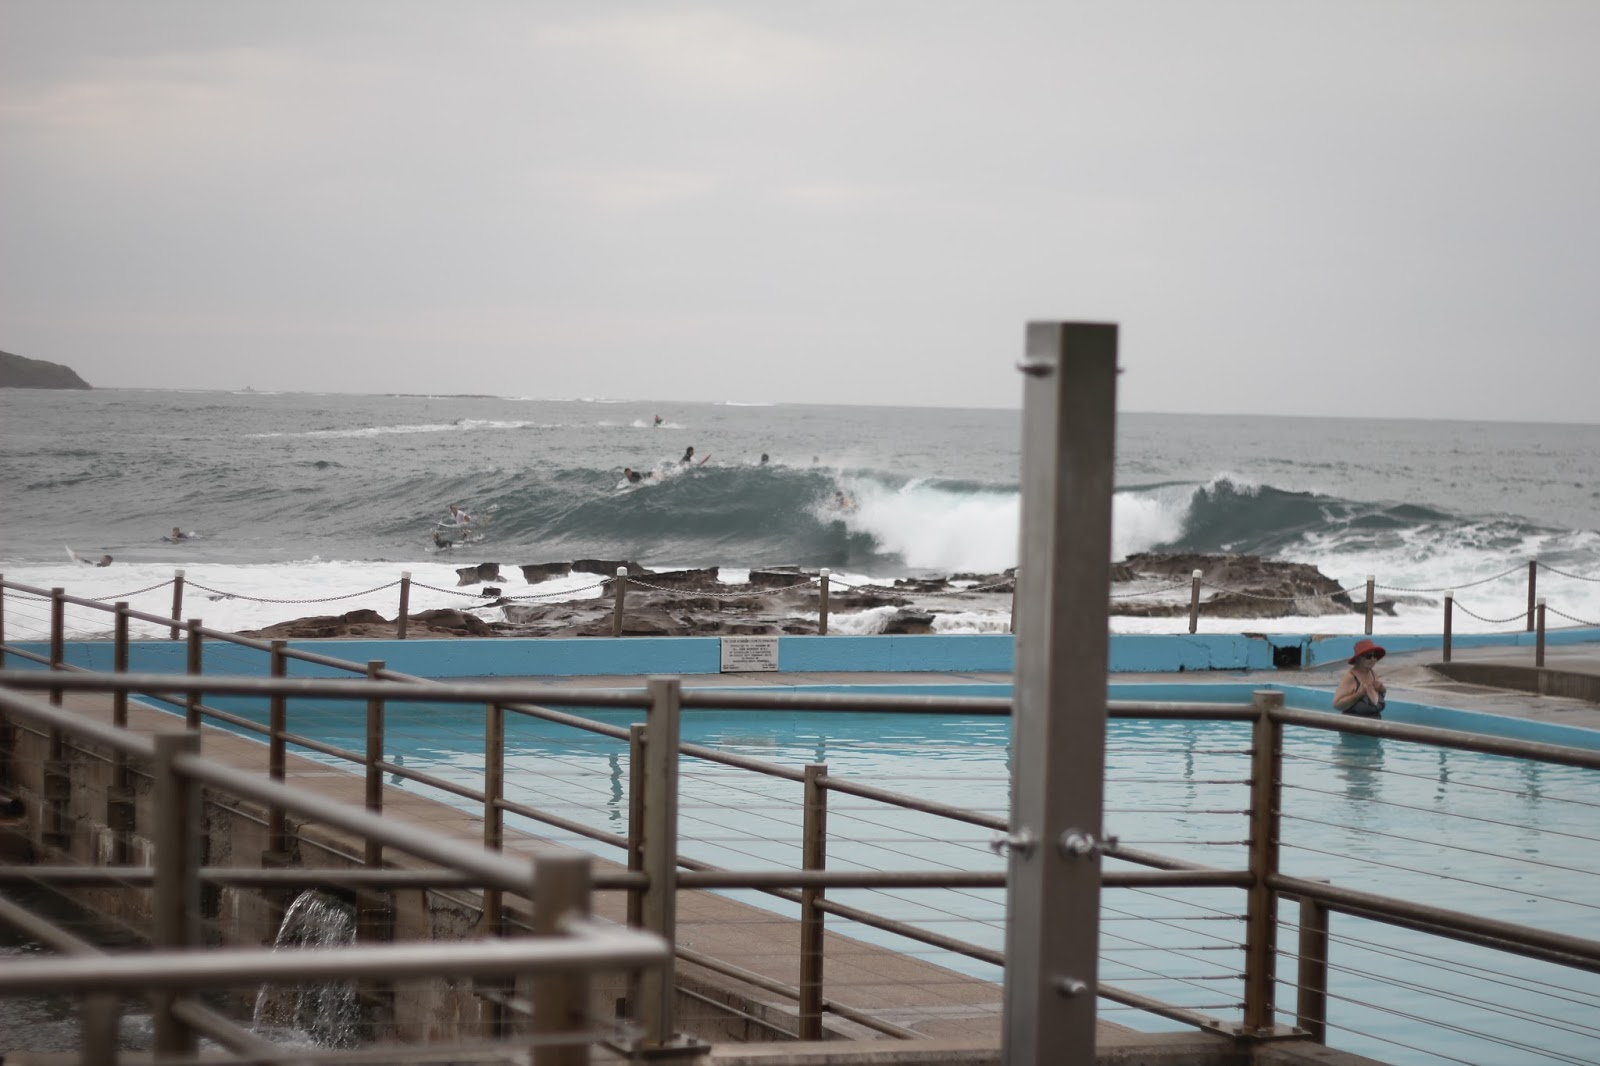 26-03-2016-australia-siebert-surfboards-09